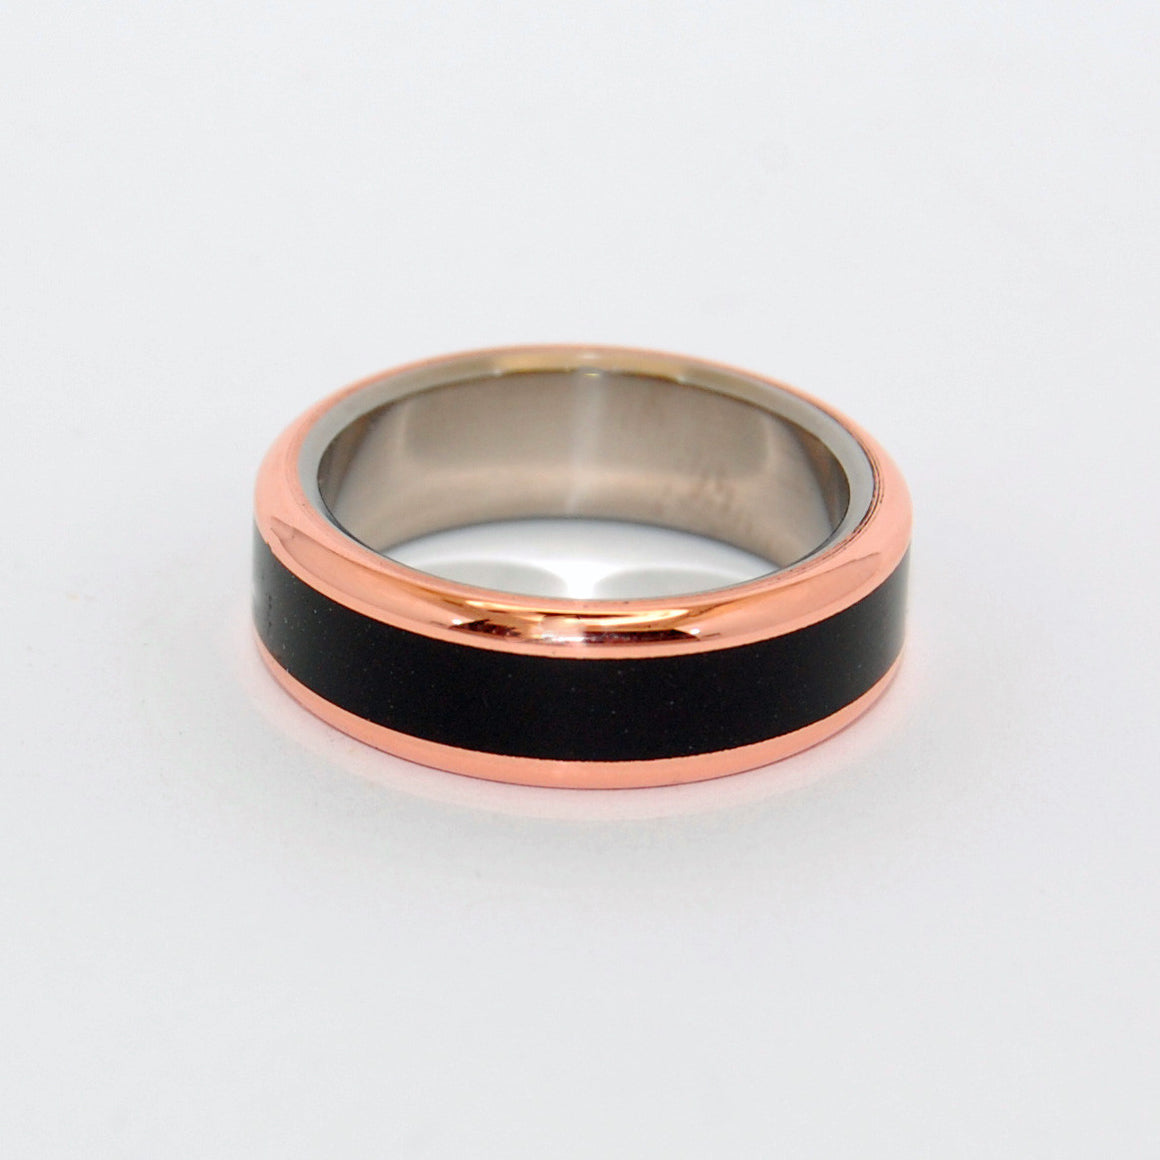 IN HIS CLEARNESS | Onyx Stone Wedding Rings - Unique Wedding Rings - Minter and Richter Designs